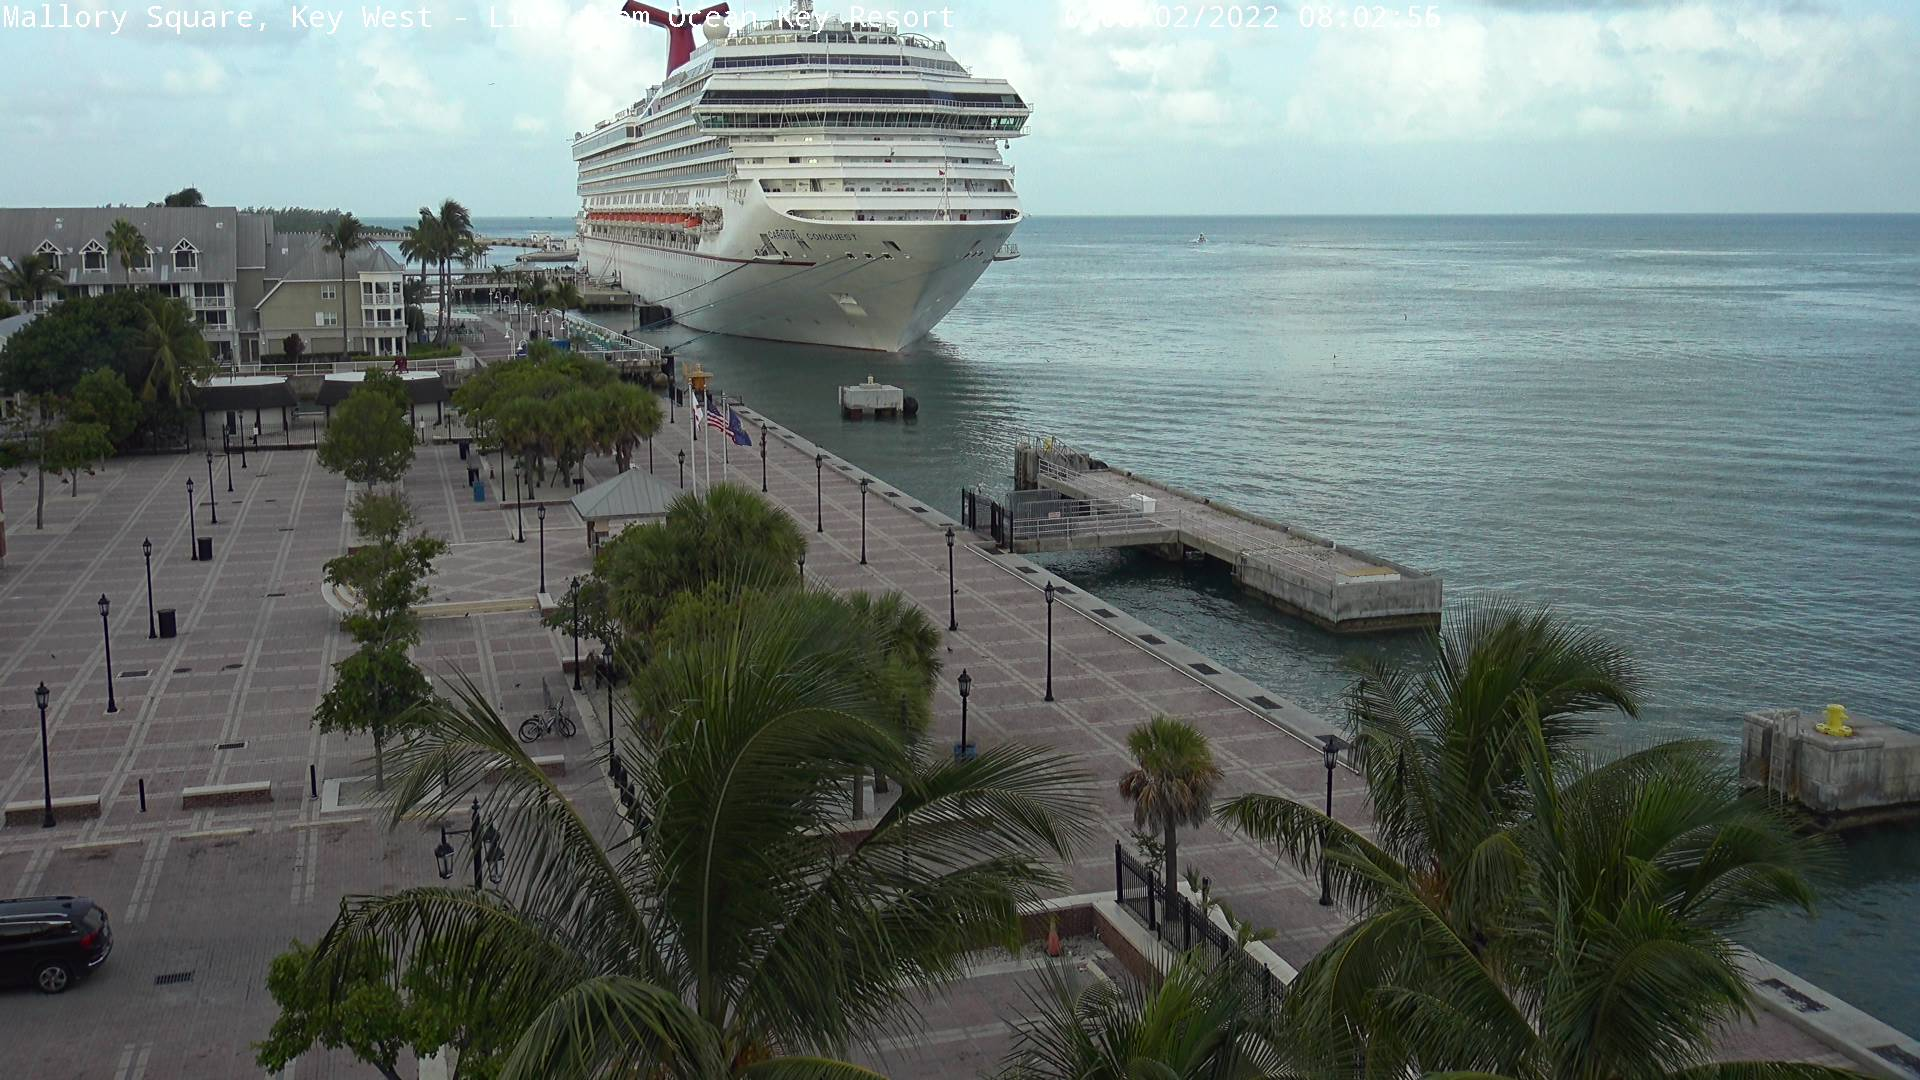 Mallory Square webcam, Key West, Florida